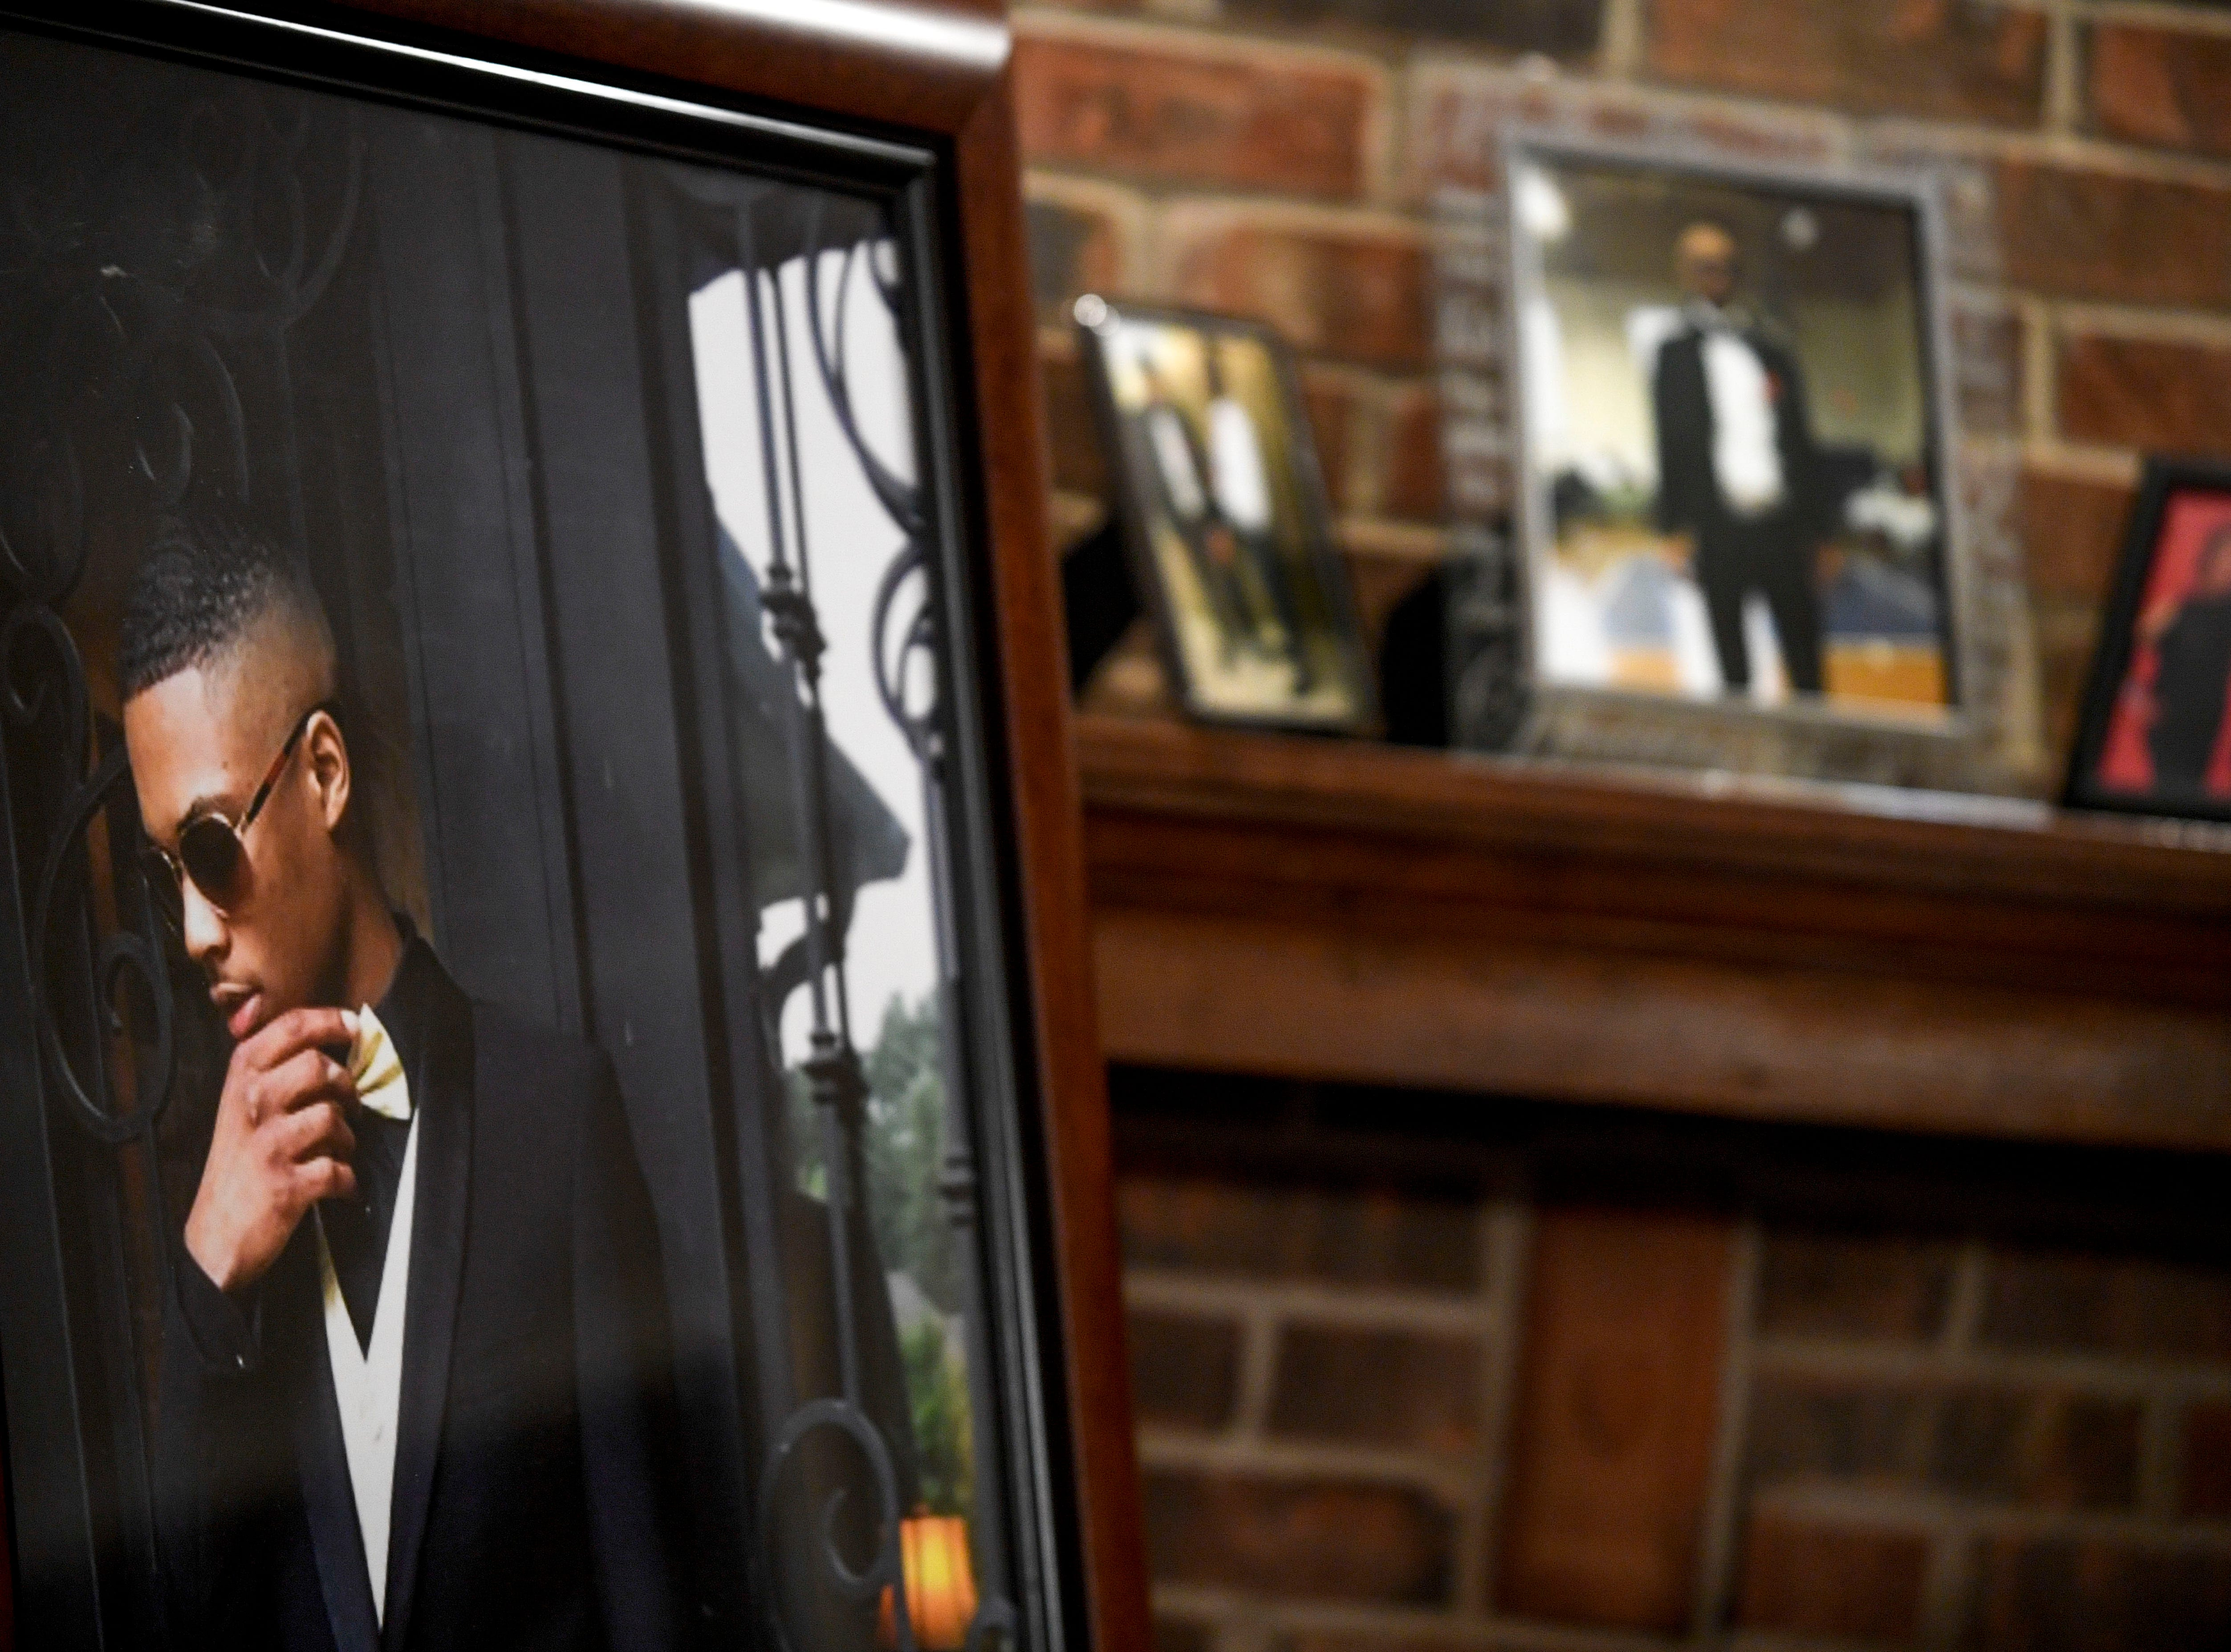 Kemmeka Currie took a photo from Kentavious Wilson's prom, blew it up, and framed it to honor her deceased son at the Currie's home in Brownsville, Tenn., on Wednesday, Jan. 2, 2019.